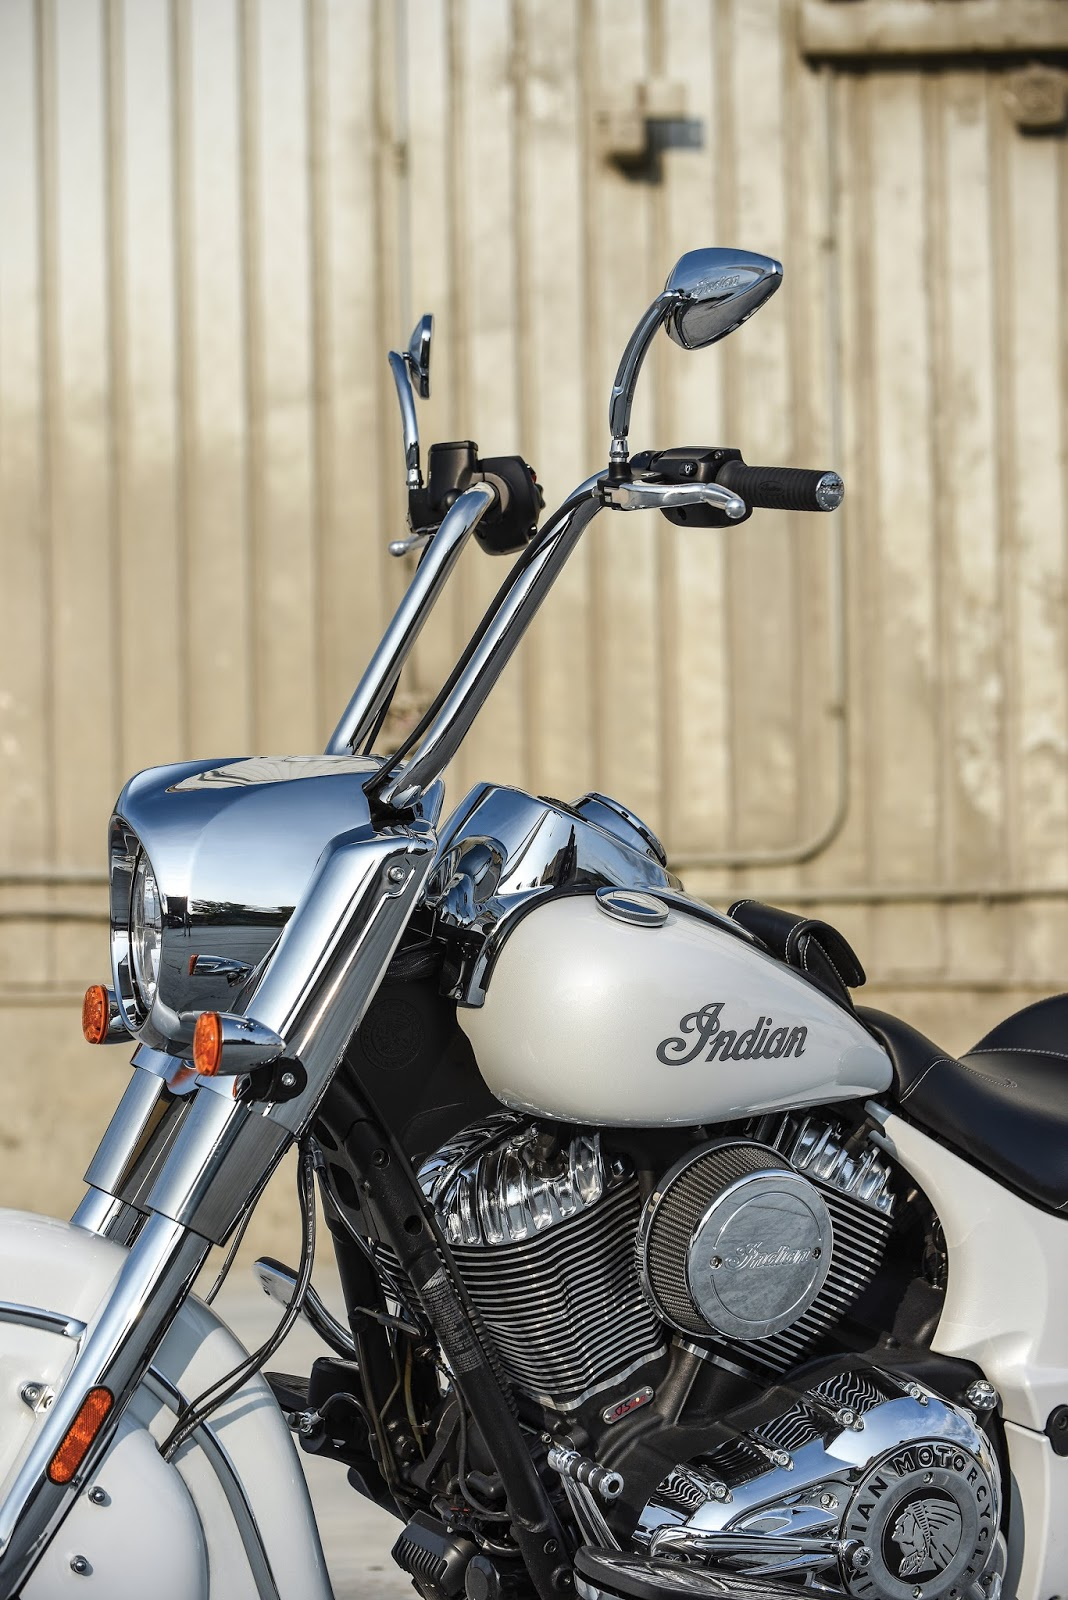 Meet indian motorcycles first model of 2016 indian chief dark - For 2016 Indian Motorcycle Returns With Its Award Winning Lineup Of Indian Chief Models Delivering The Power Handling Unmatched Engineering And Stunning